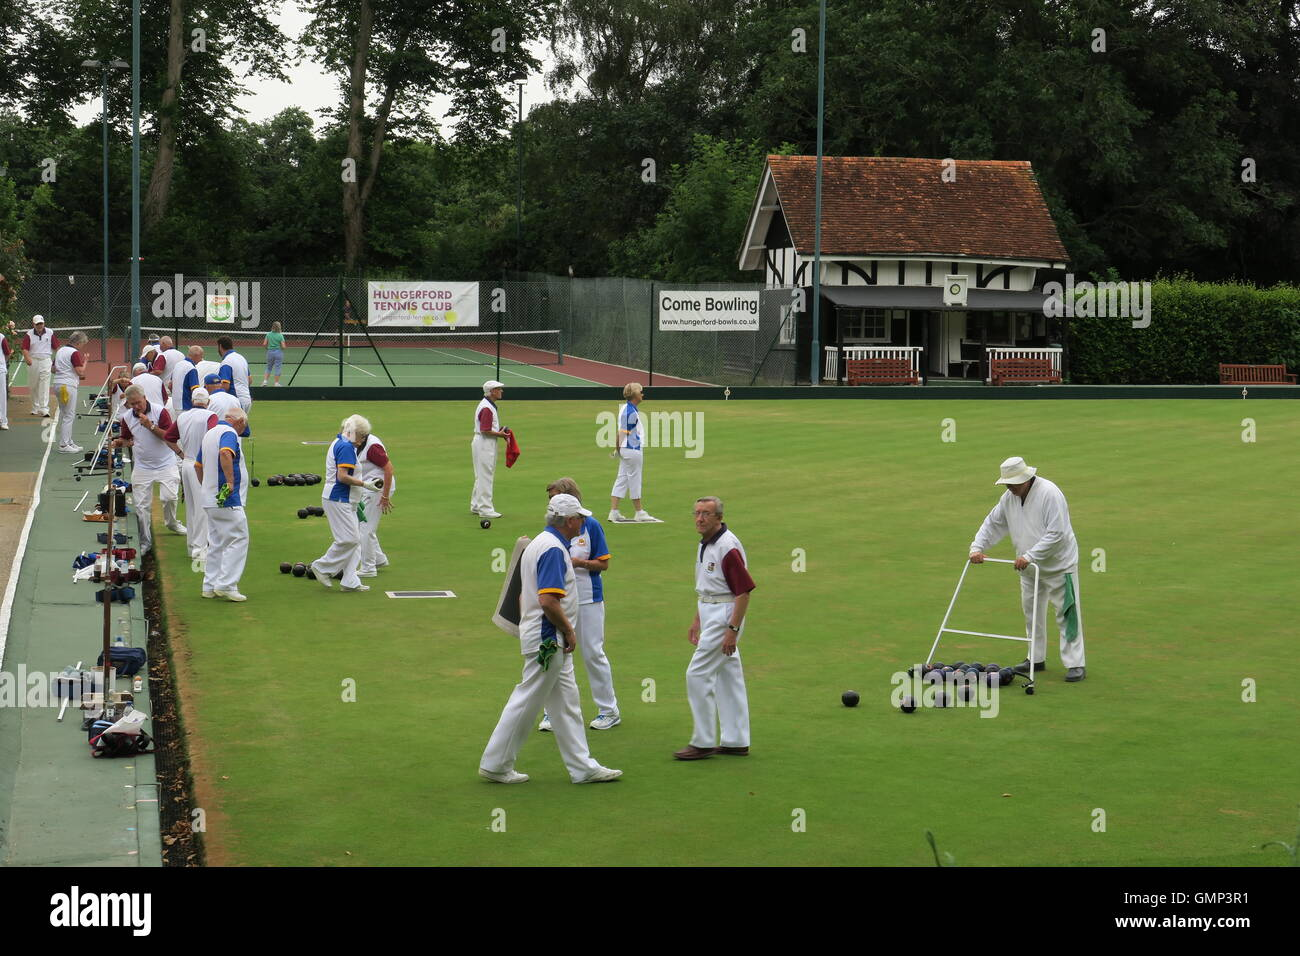 A bowling match at Hungerford Bowling Club. Lawn bowls uses a flat lawn unlike the slightly domed lawn of Crown - Stock Image